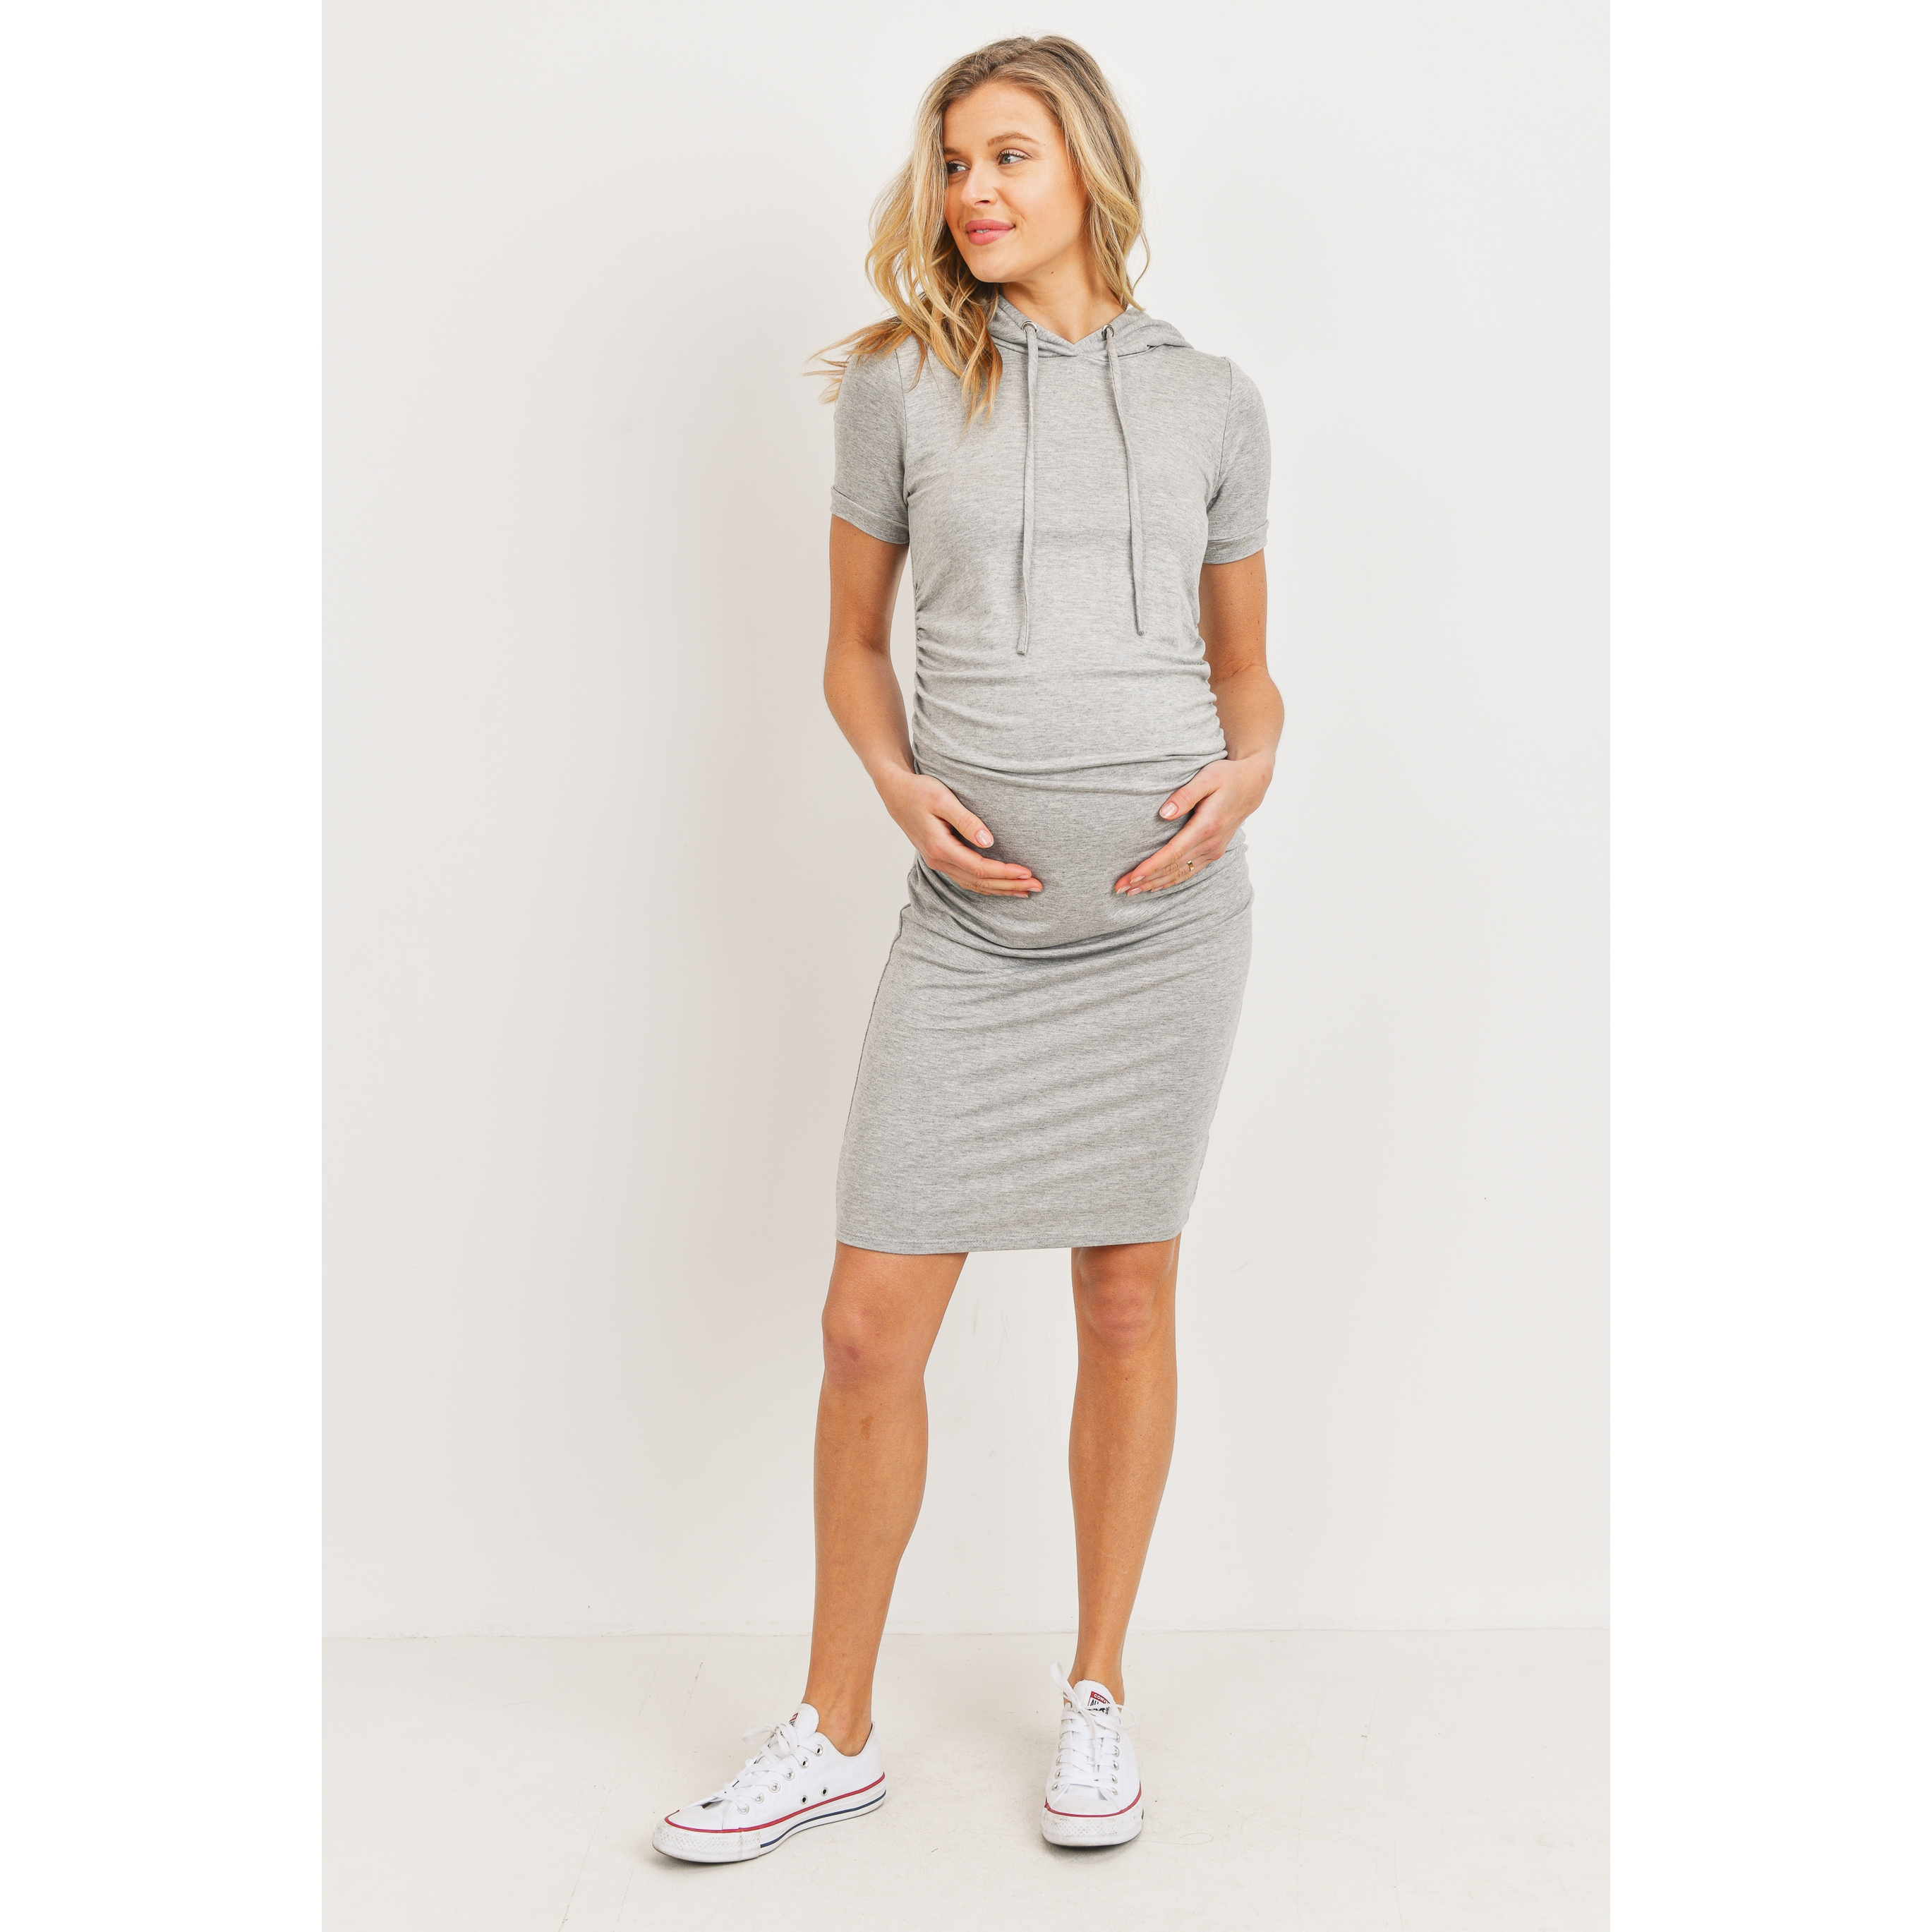 Short Sleeve Heather Grey Hoodie Maternity Dress